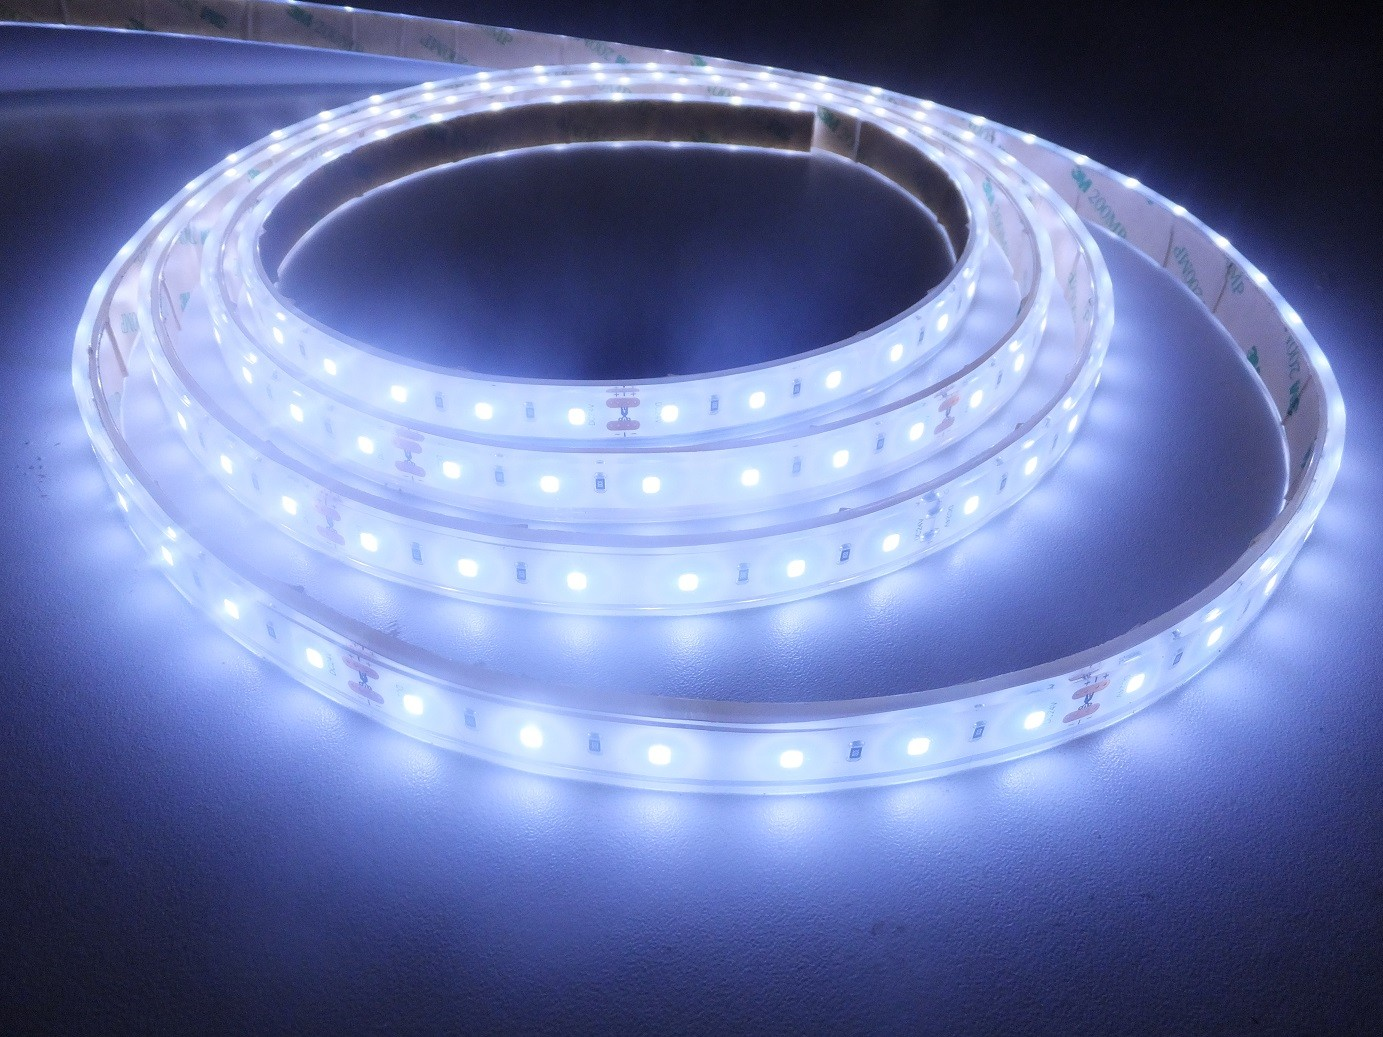 comment installer un ruban led